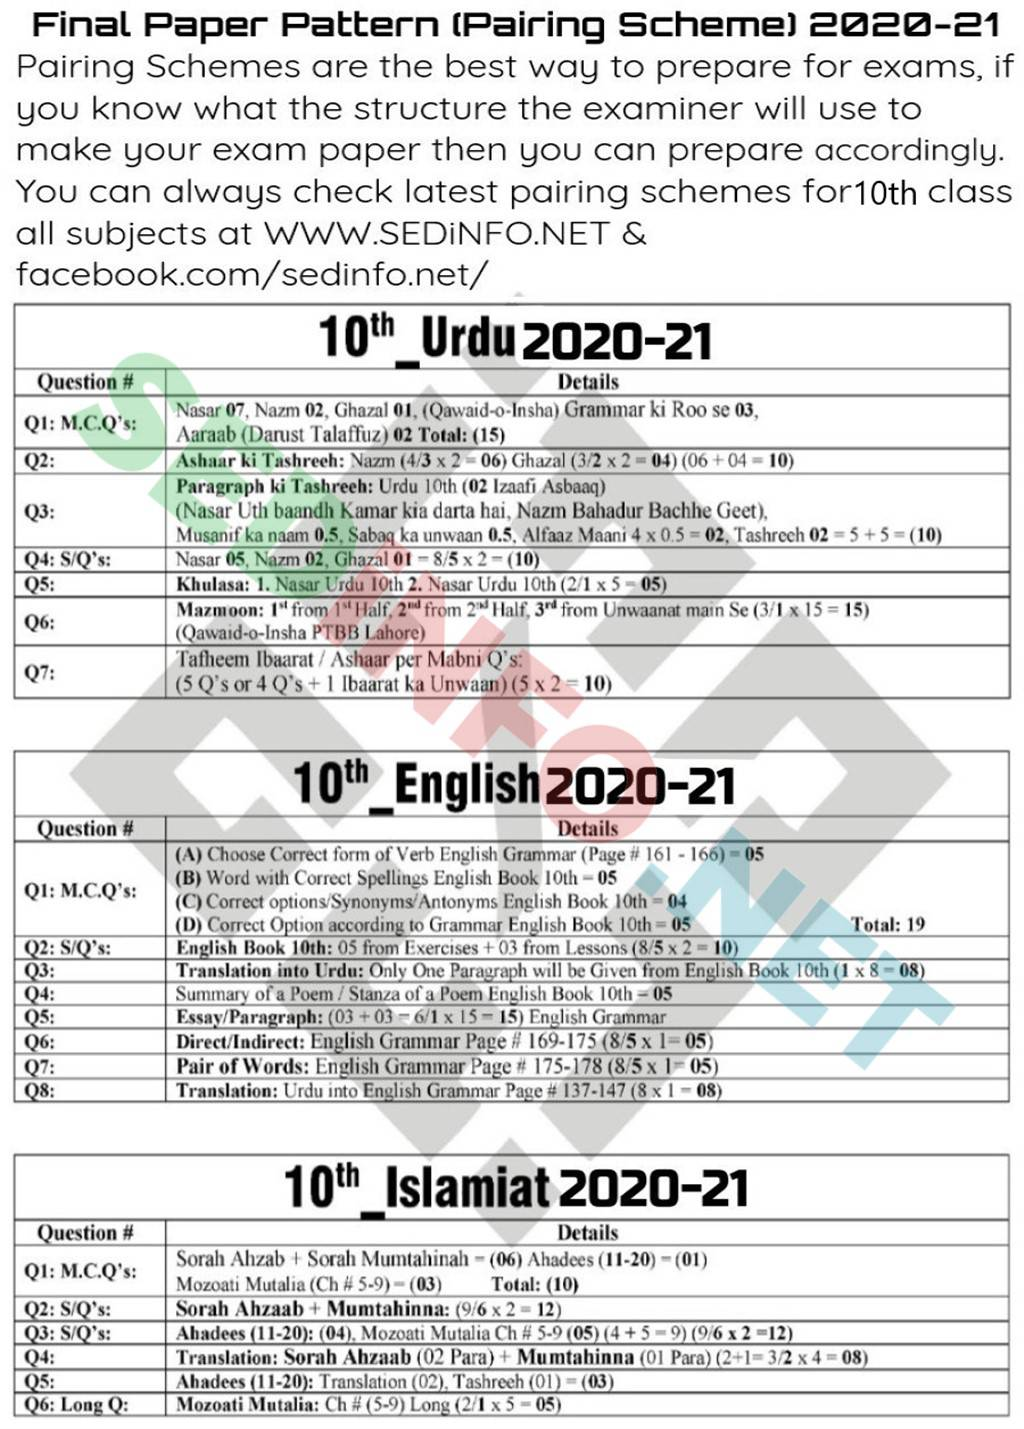 10th-Pairing-Schemes-2020-21-Urdu-English-Islamic-Studies-Page-2